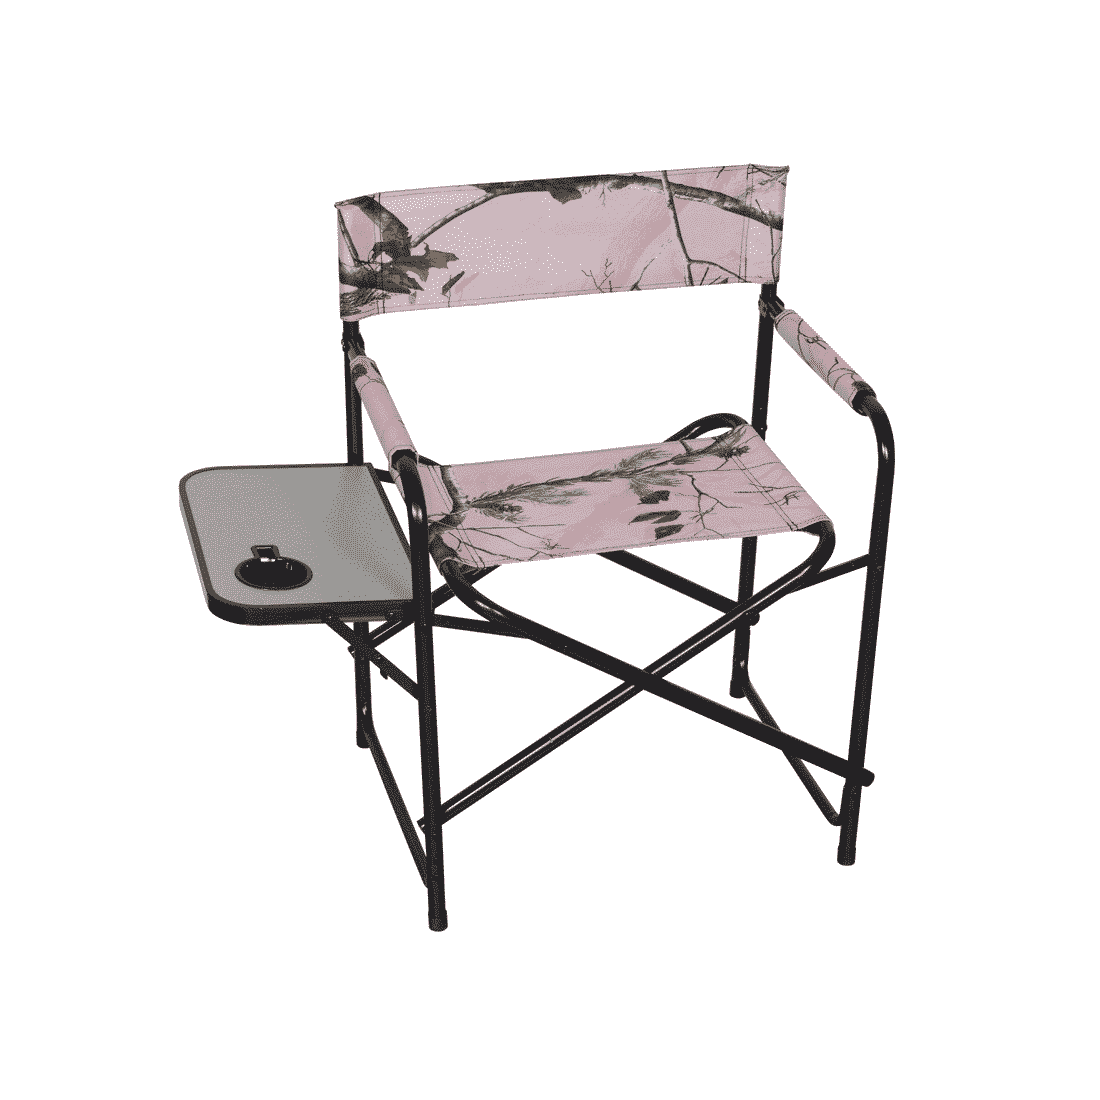 MAHCO OUTDOORS DIRECTORu0027S CHAIR u2013 PINK CAMO  sc 1 st  Northwoods Wholesale Outlet & MAHCO OUTDOORS DIRECTORu0027S CHAIR - PINK CAMO - Northwoods Wholesale ...